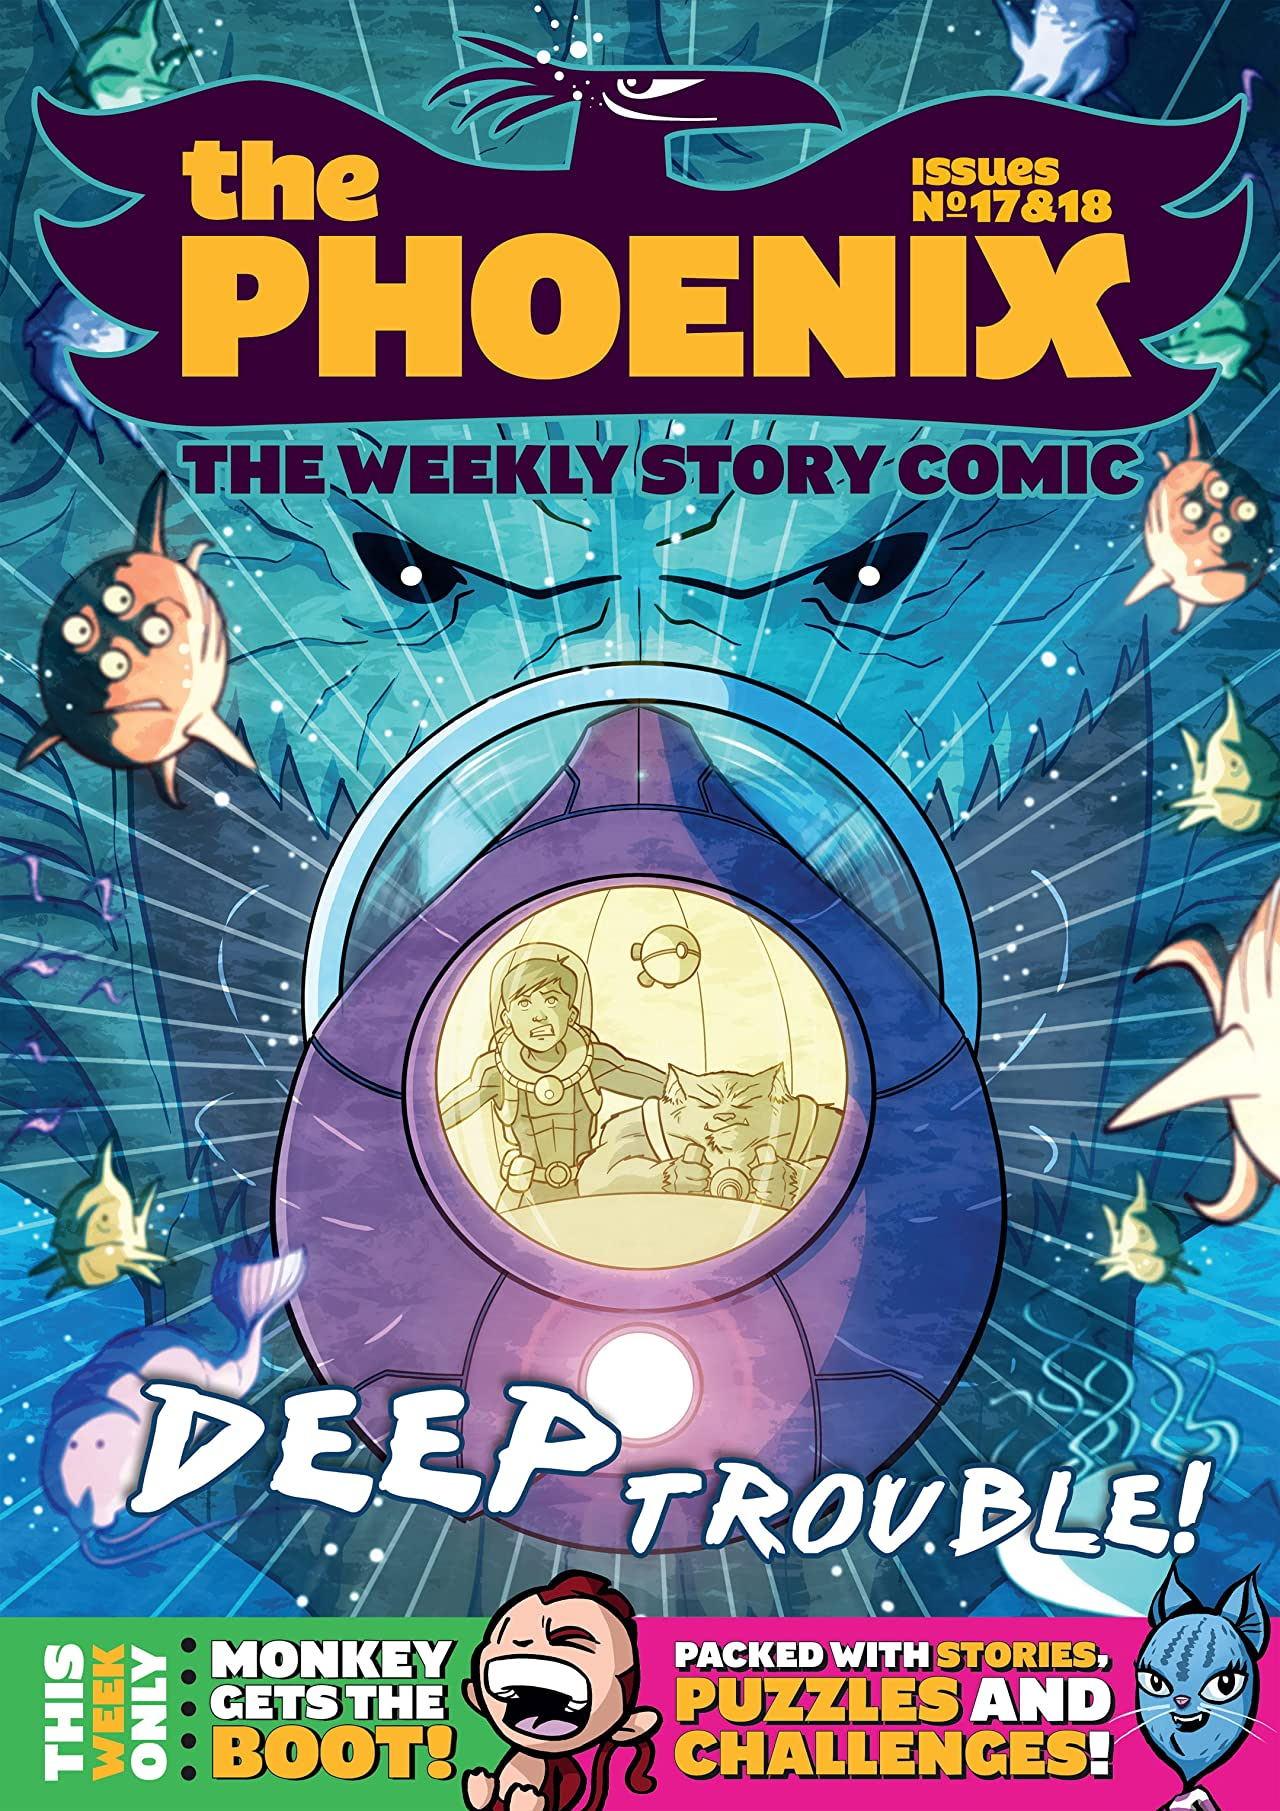 The Phoenix #17 & 18: The Weekly Story Comic (Double Issue)